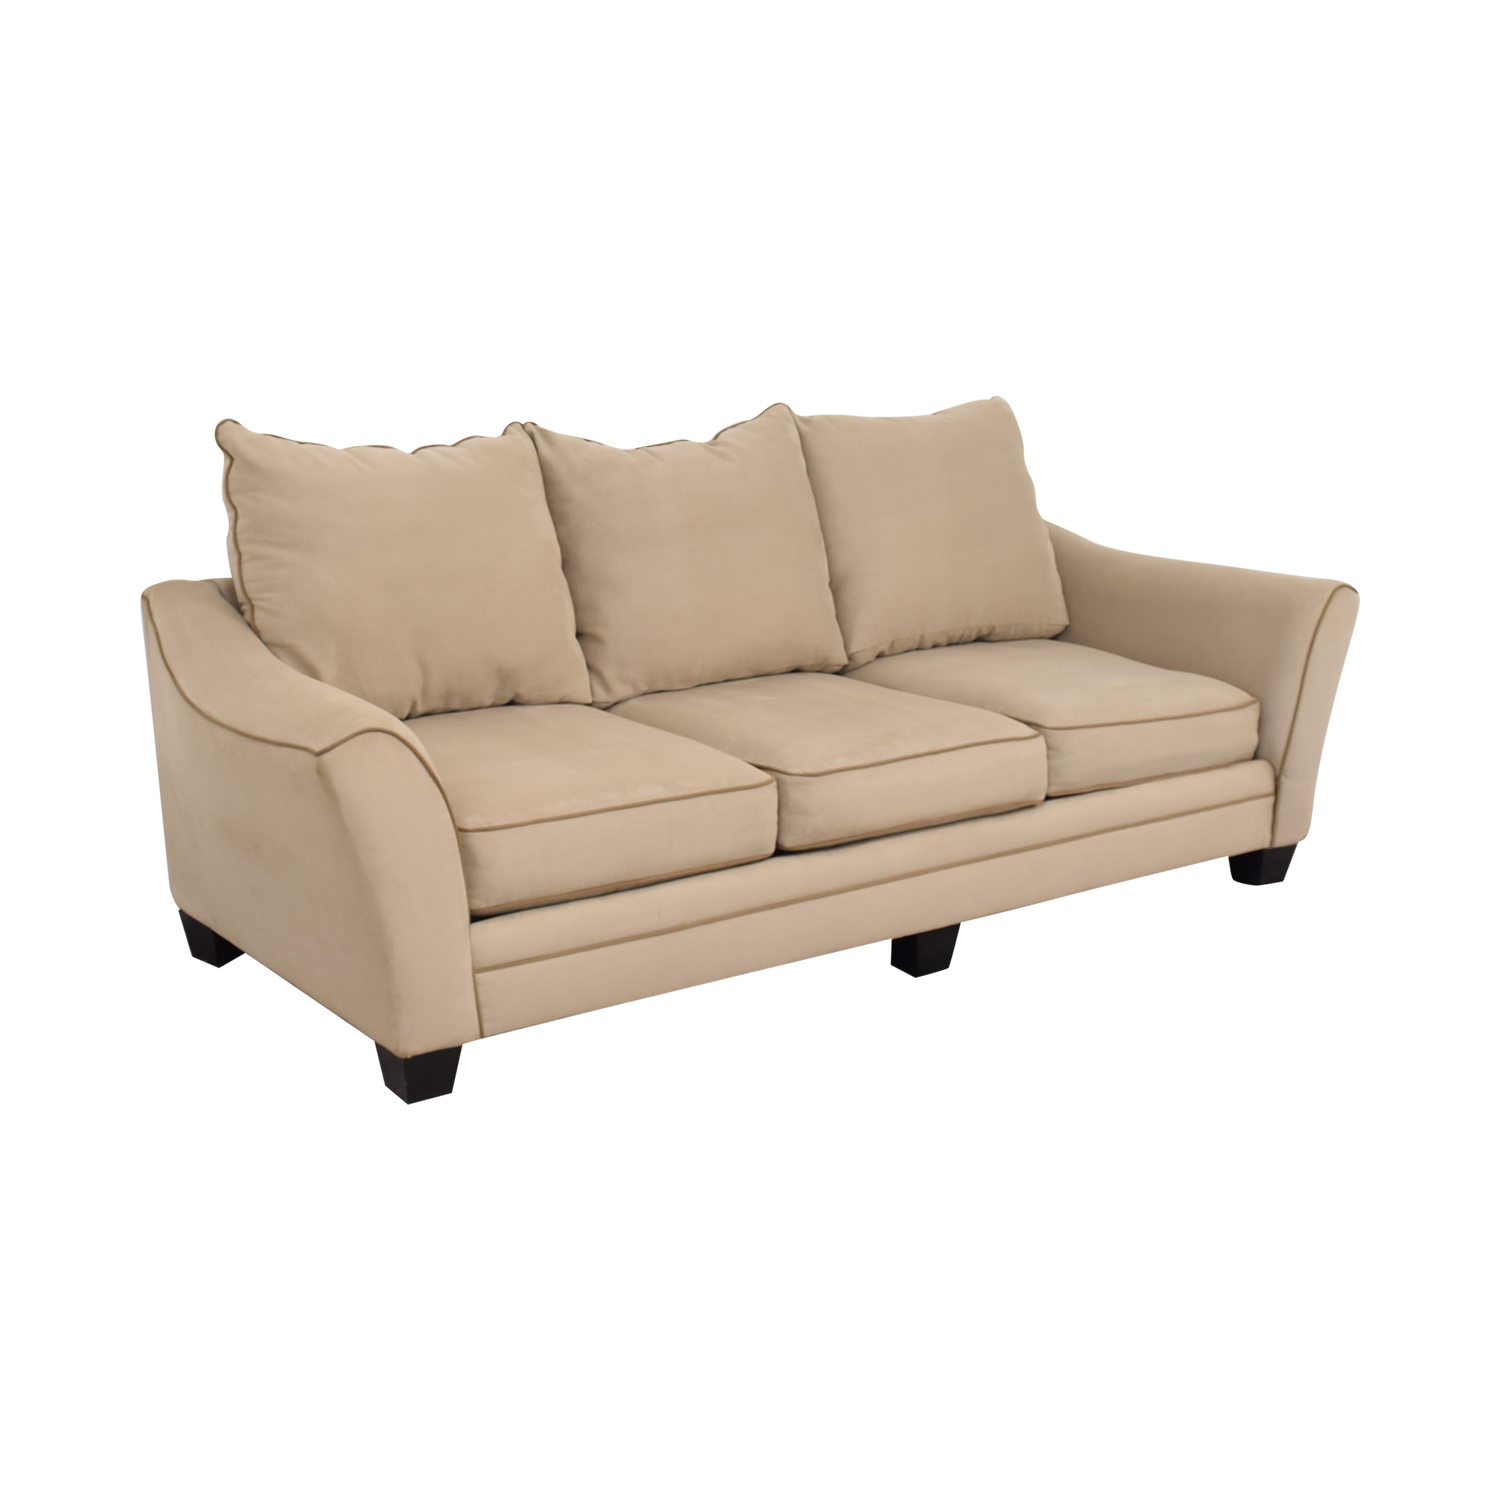 Raymour & Flanigan Foresthill Sofa sale